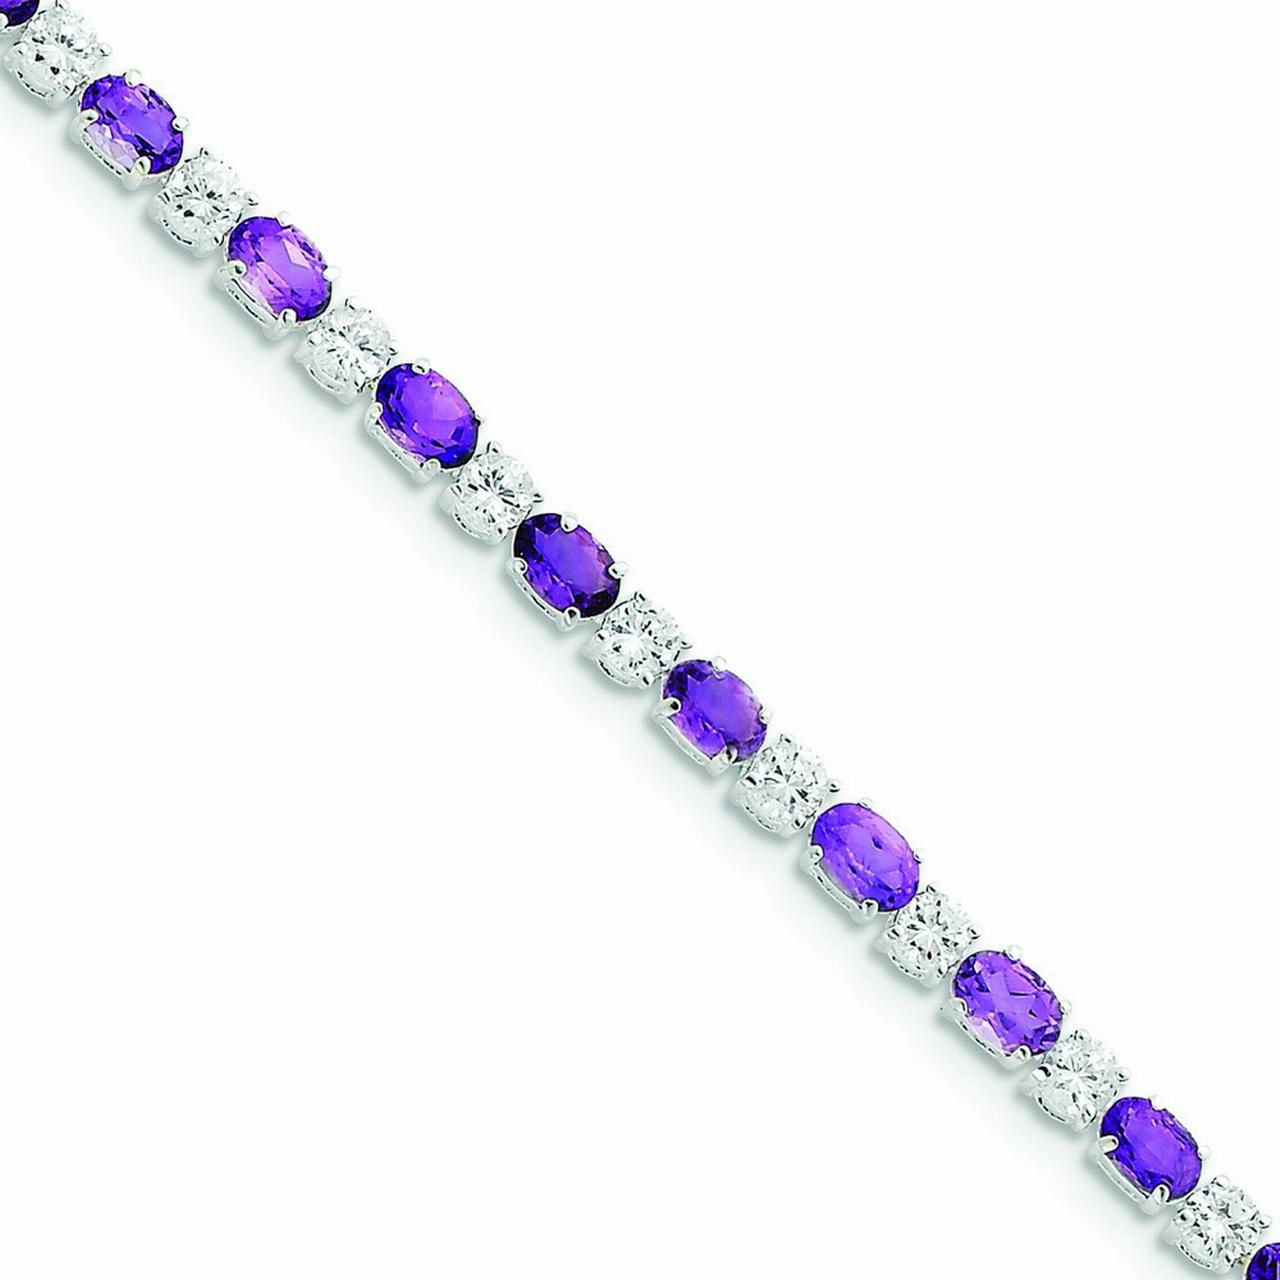 Sterling Silver Amethyst and Cubic Zirconia Bracelet 7 Inch Box Clasp by Kevin Jewelers